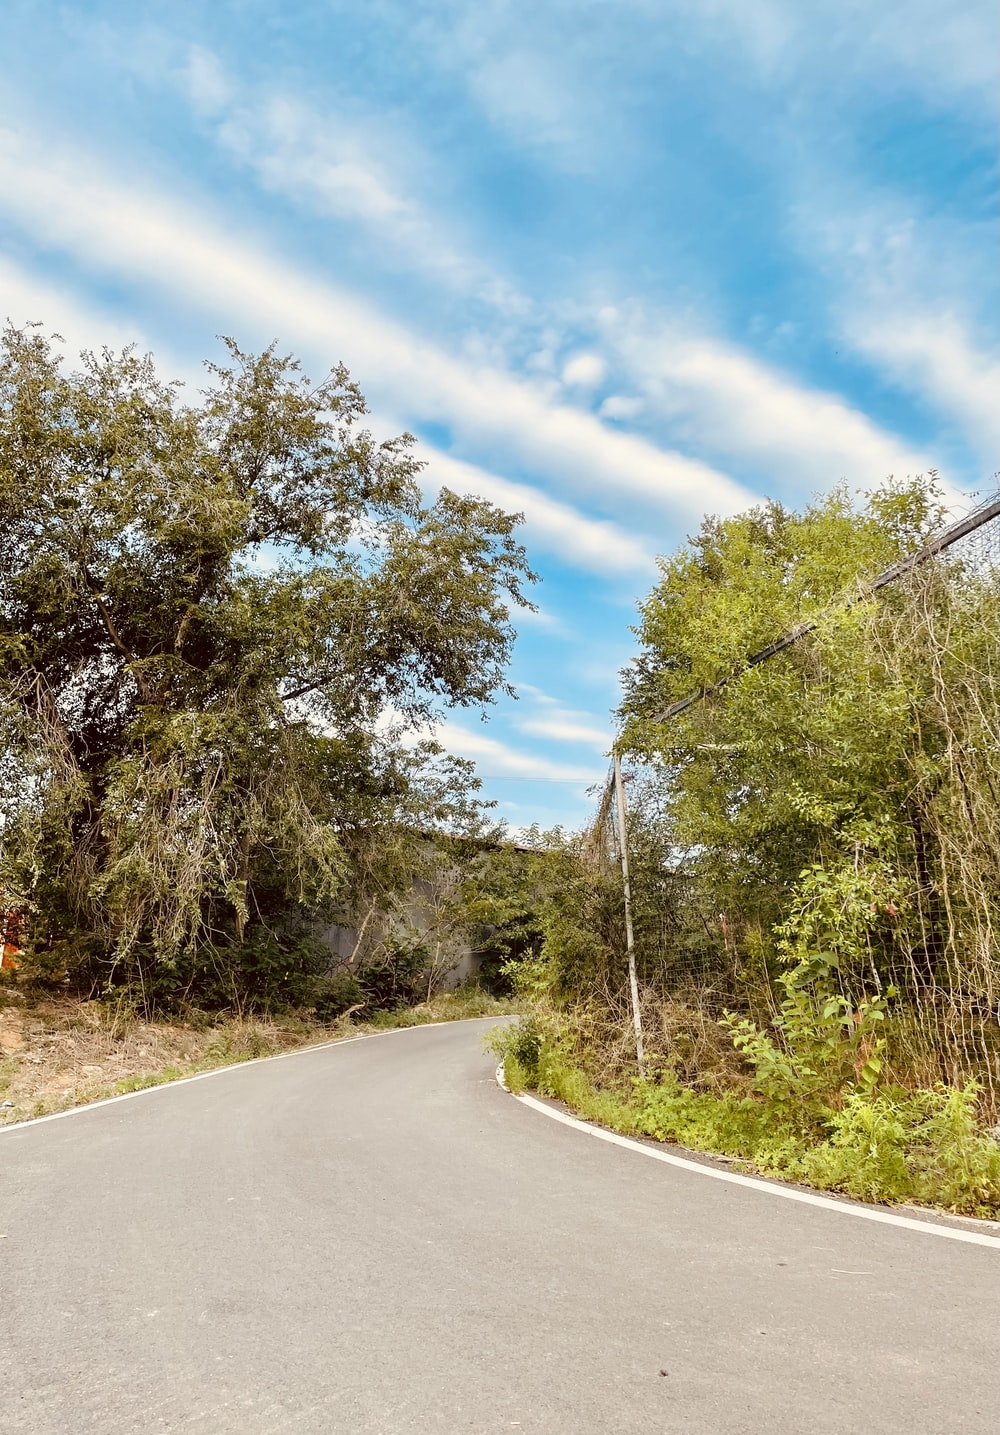 green trees beside gray concrete road under blue sky during daytime